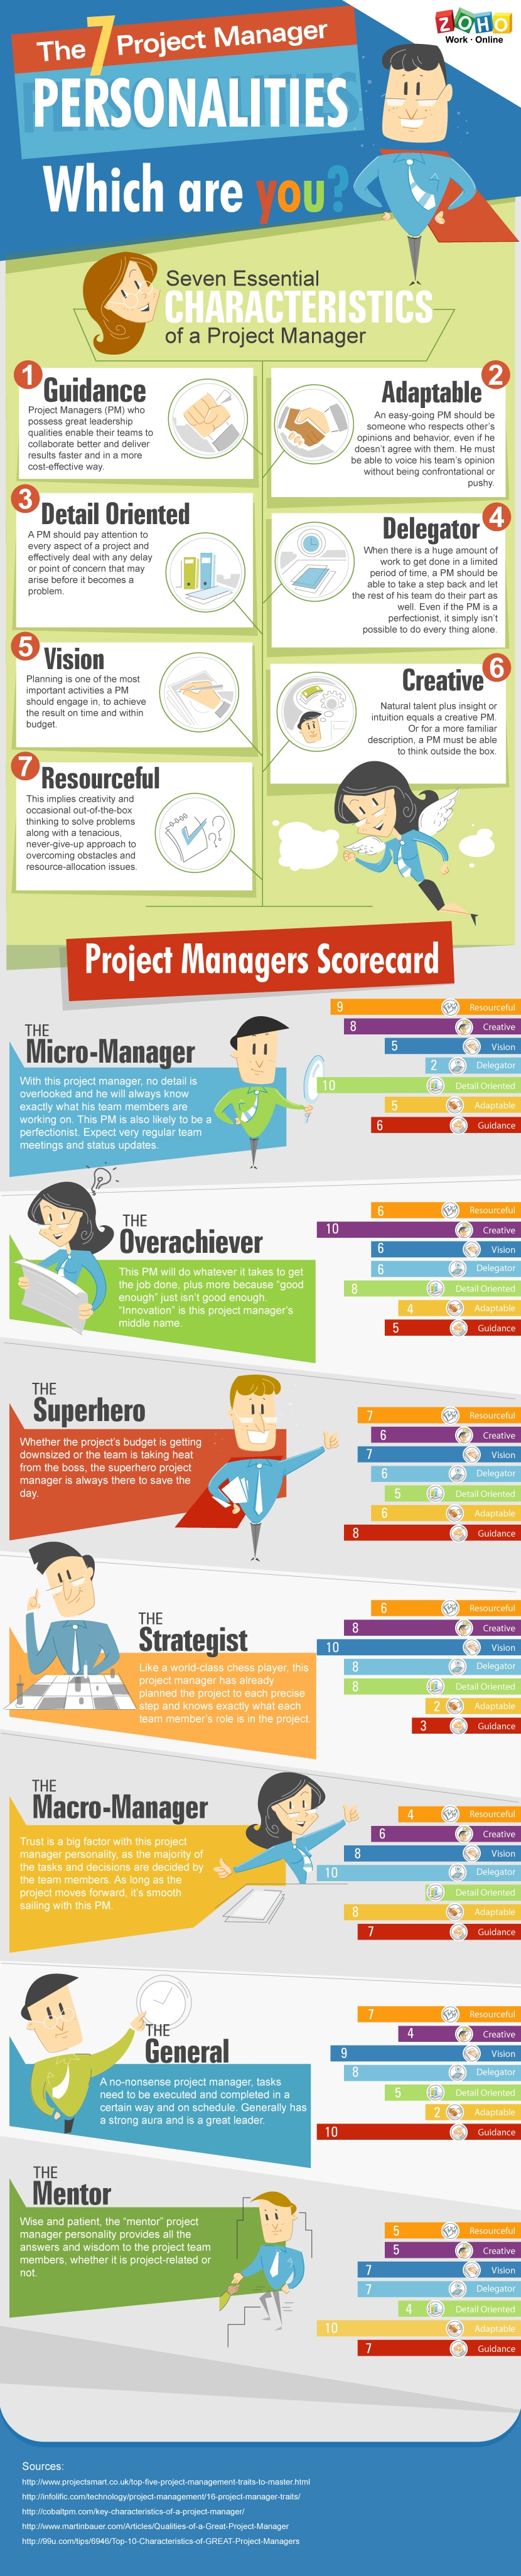 The 7 Project Manager Personalities: Which One Are You?